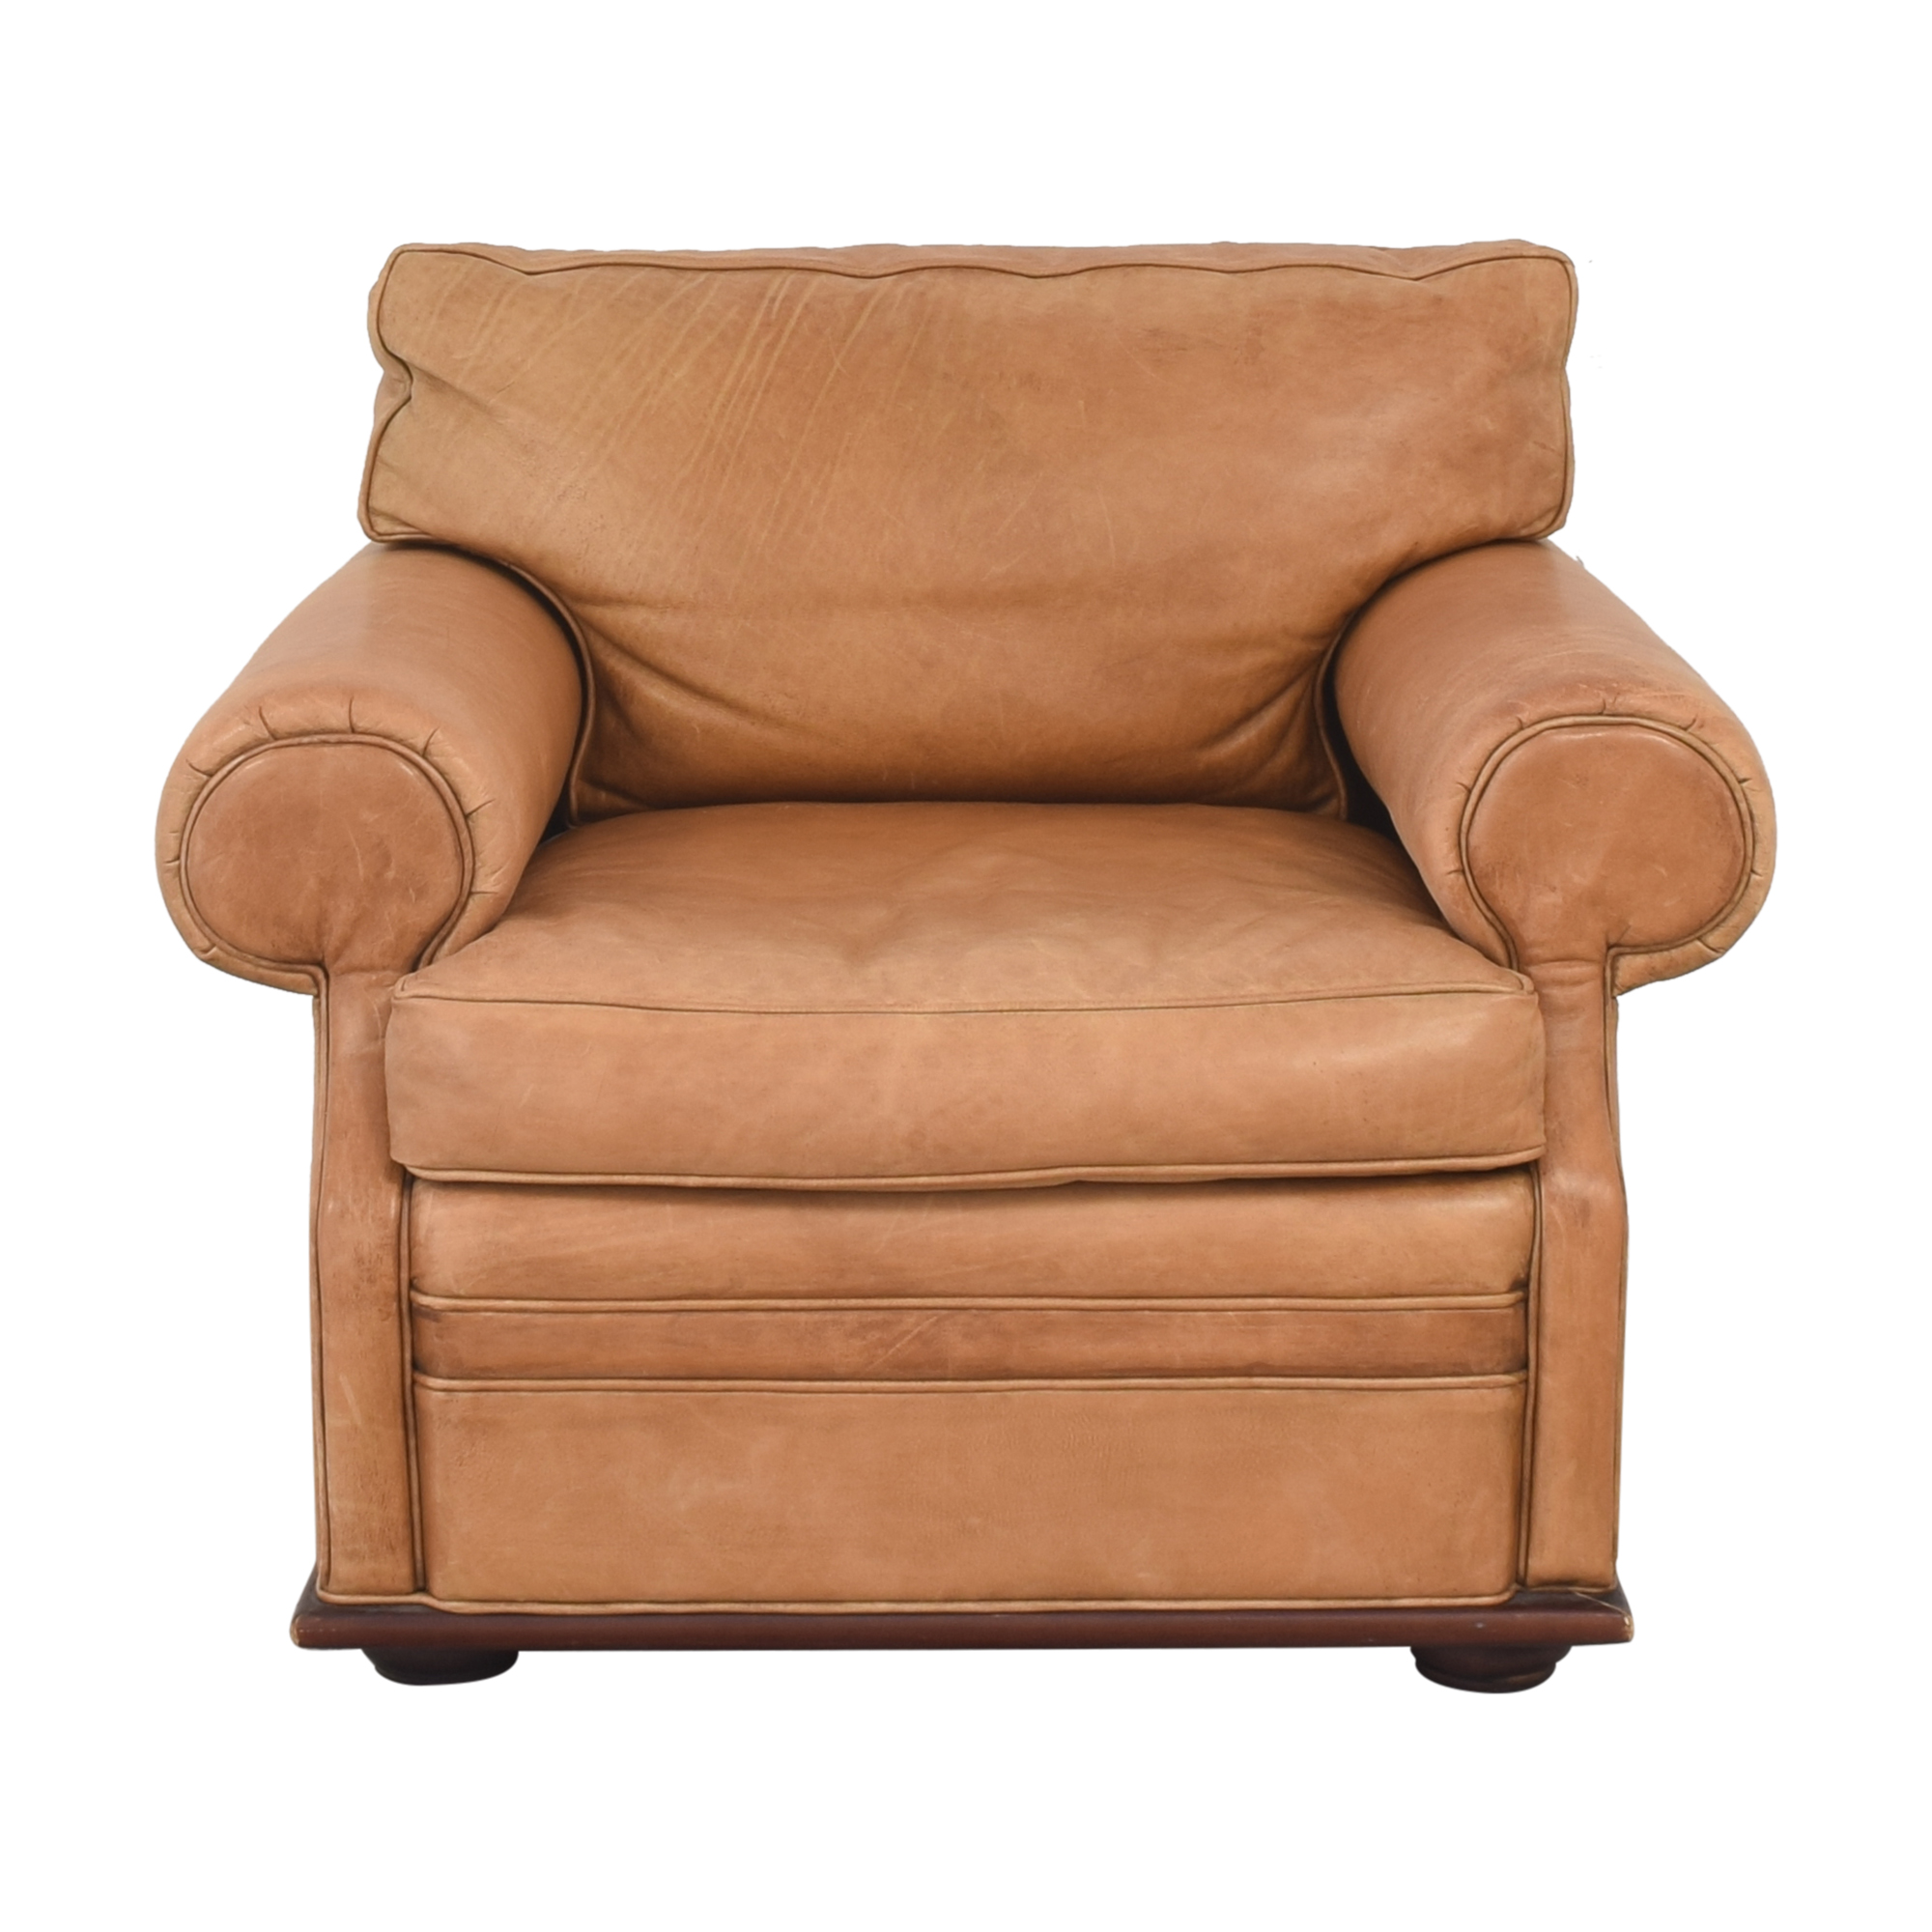 Ralph Lauren Home Ralph Lauren Roll Arm Accent Chair dimensions